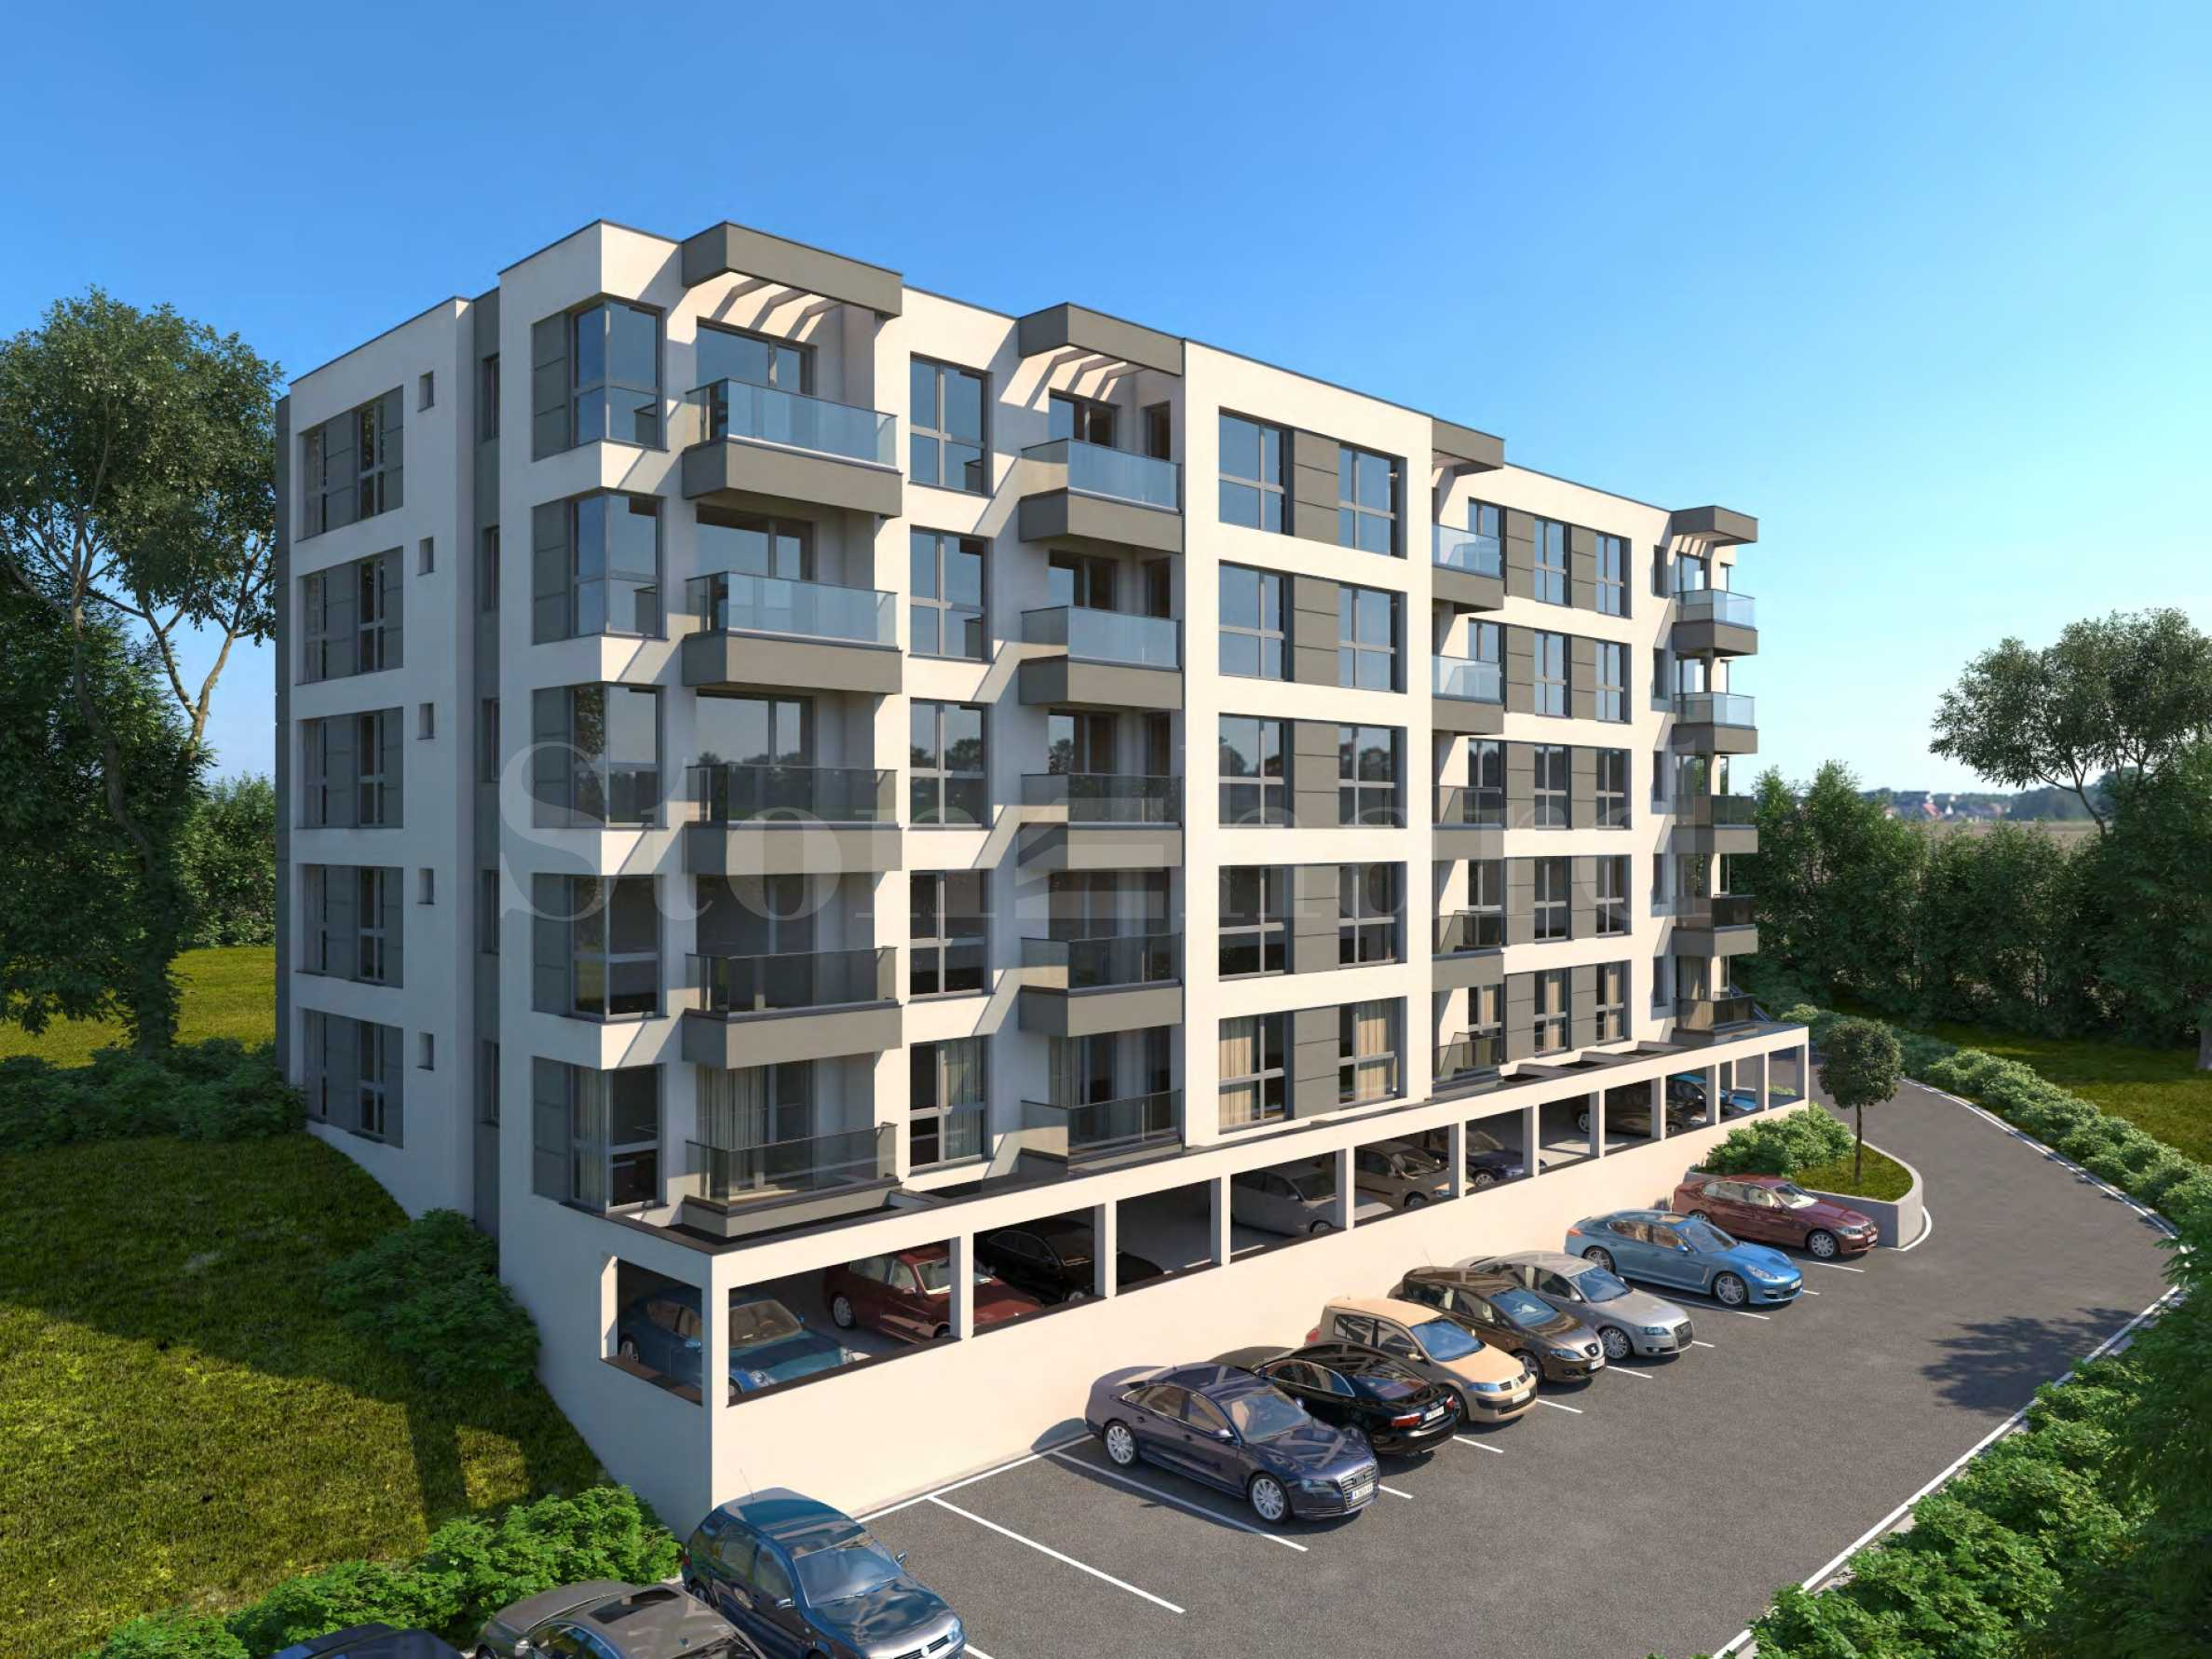 Turn-key apartments in a new complex with facilities1 - Stonehard